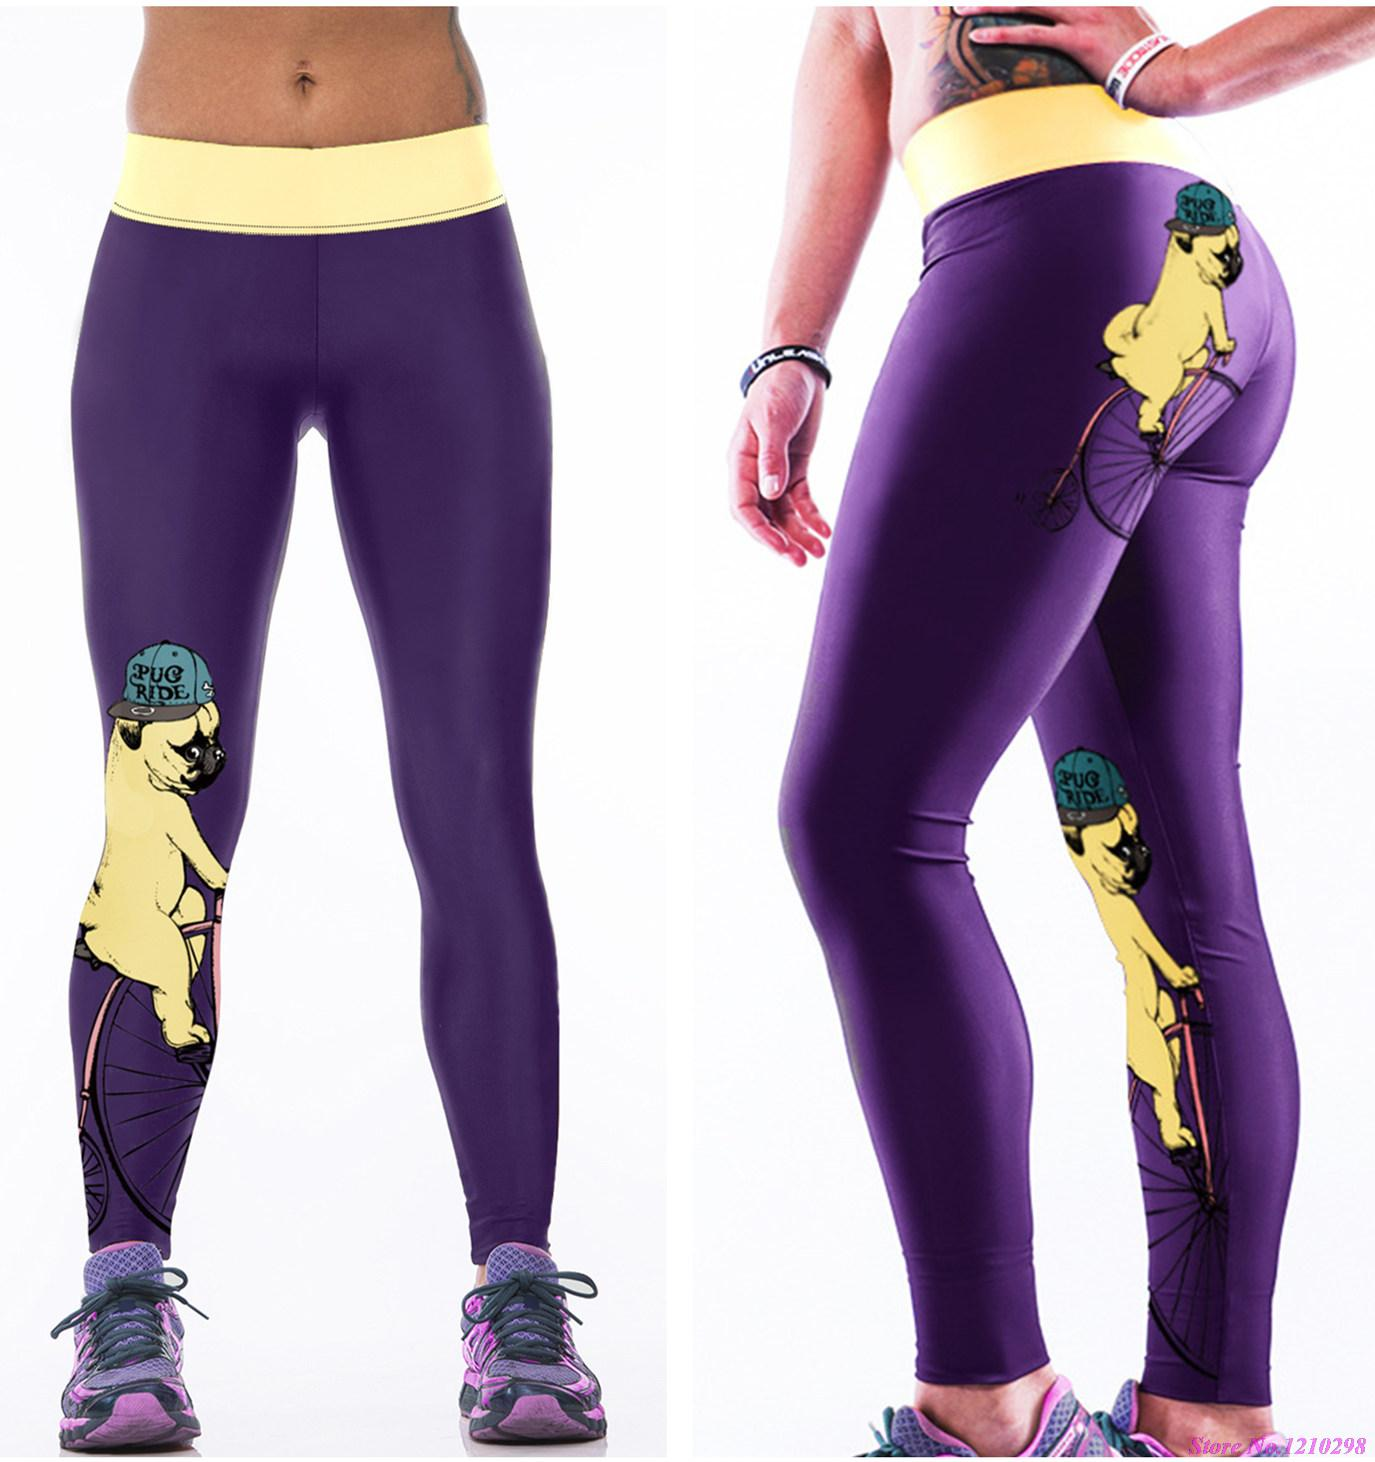 Compare Prices on Yoga Pants Purple- Online Shopping/Buy Low Price ...